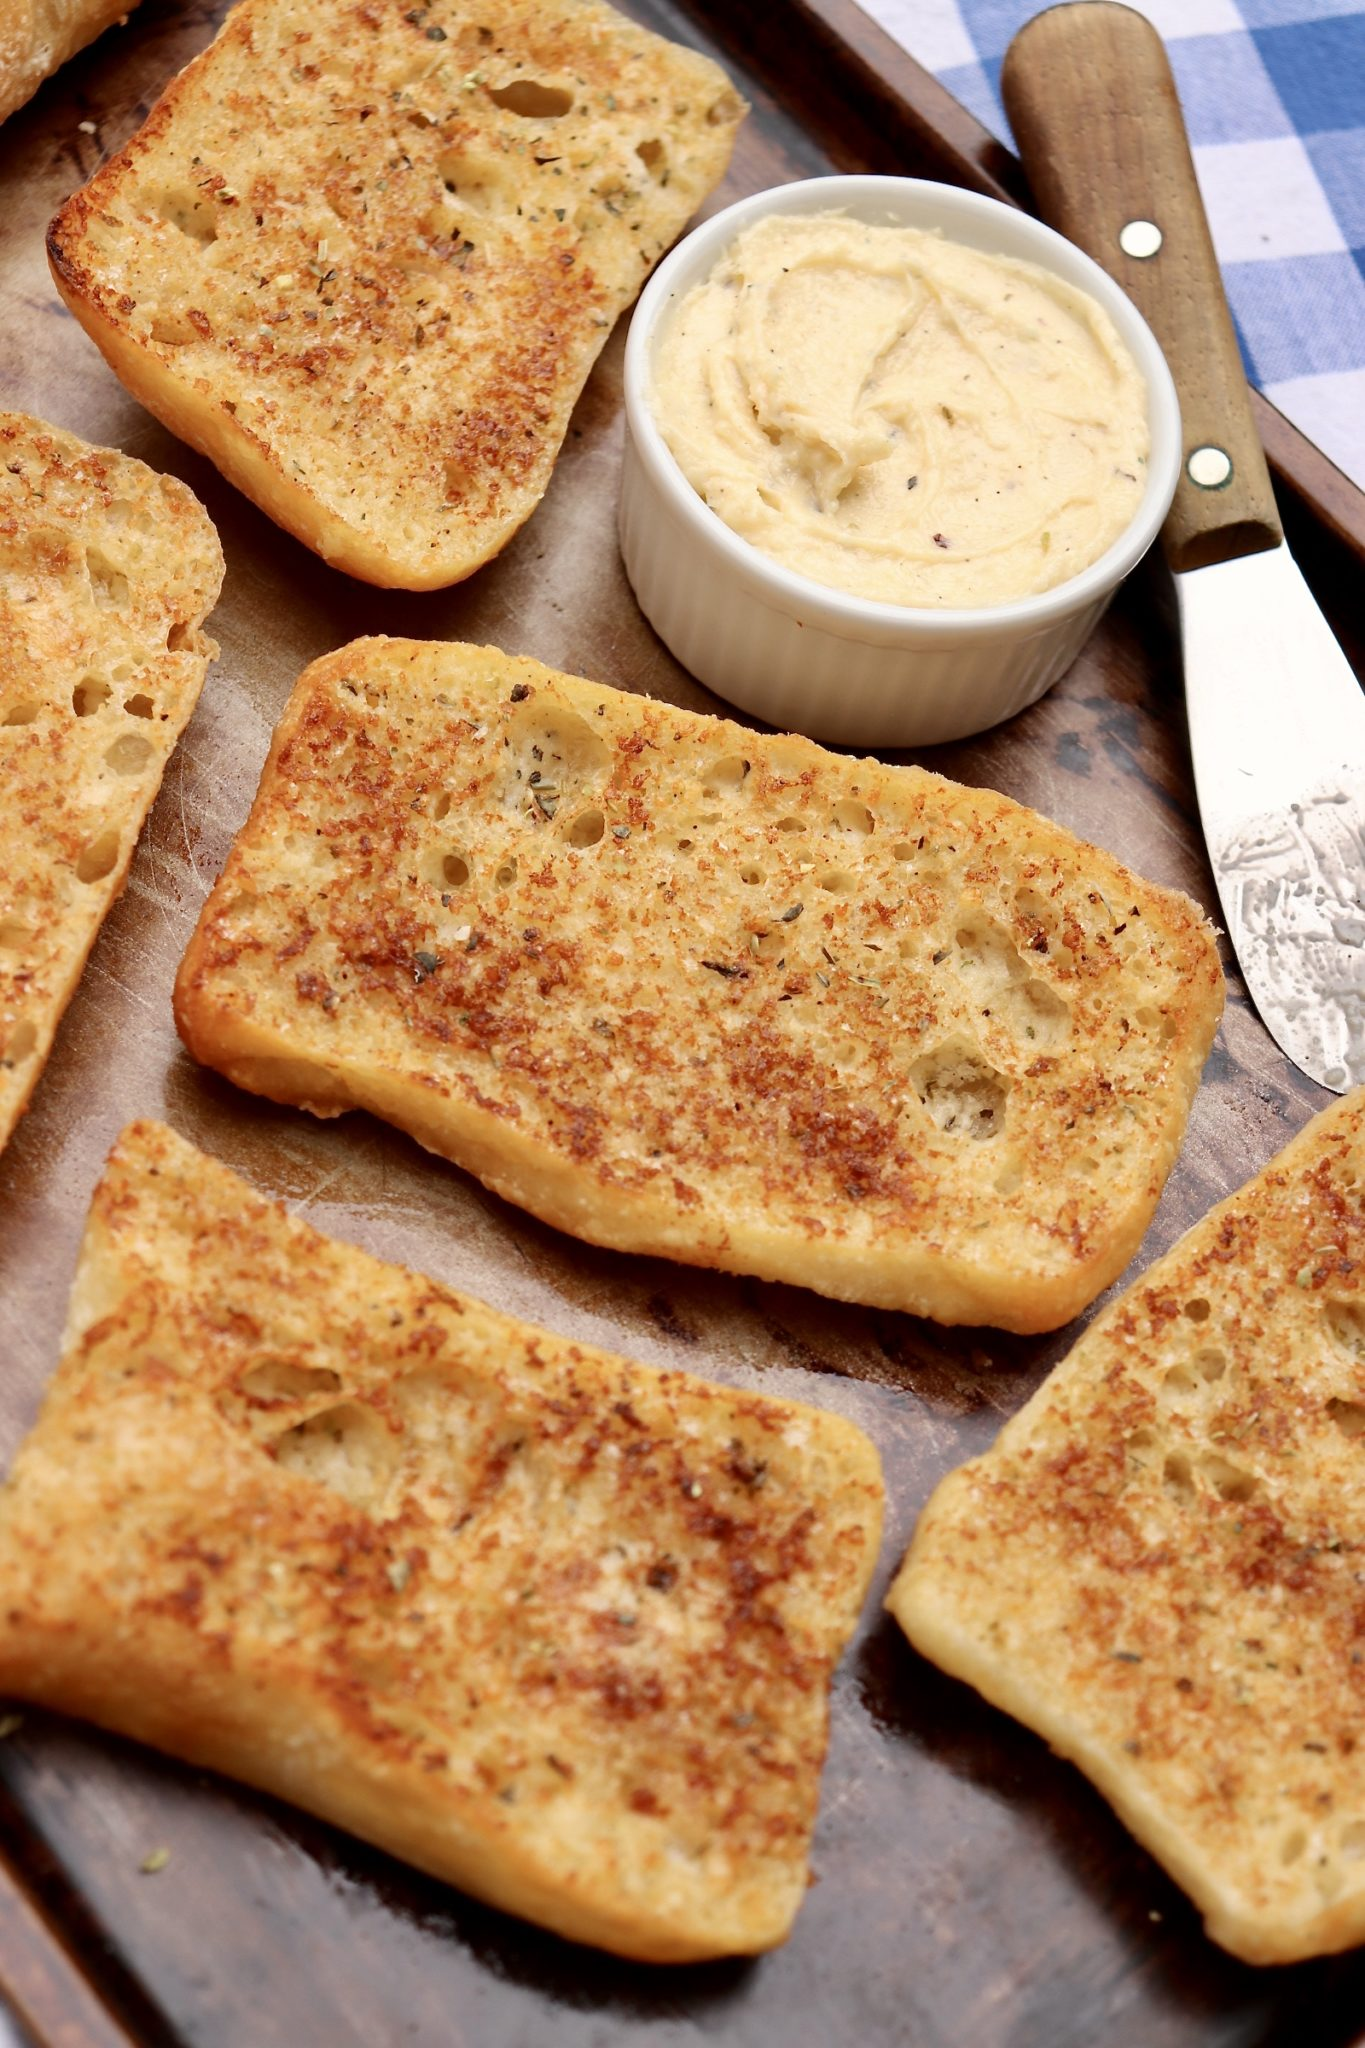 Parmesan Garlic Bread-One special ingredient makes for golden brown garlic bread that's destined to become a favorite. Can be used on a variety of breads, too!